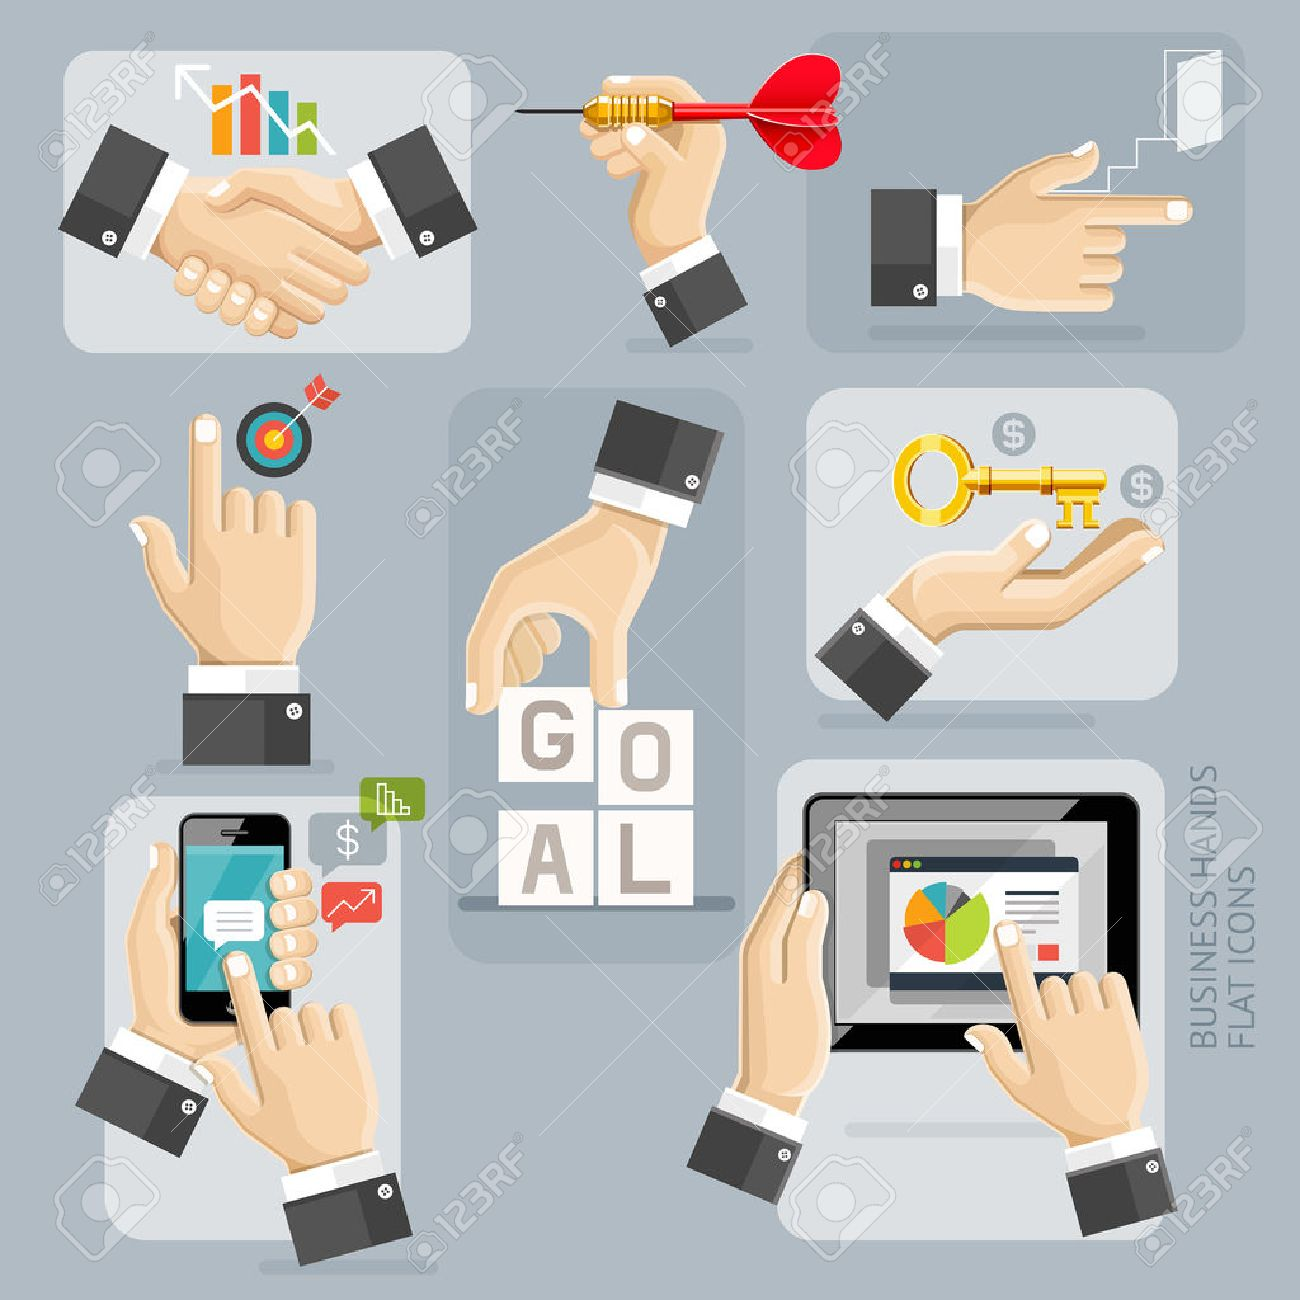 Business Hands Flat Icons Set. Illustration. Stock Vector - 54547877